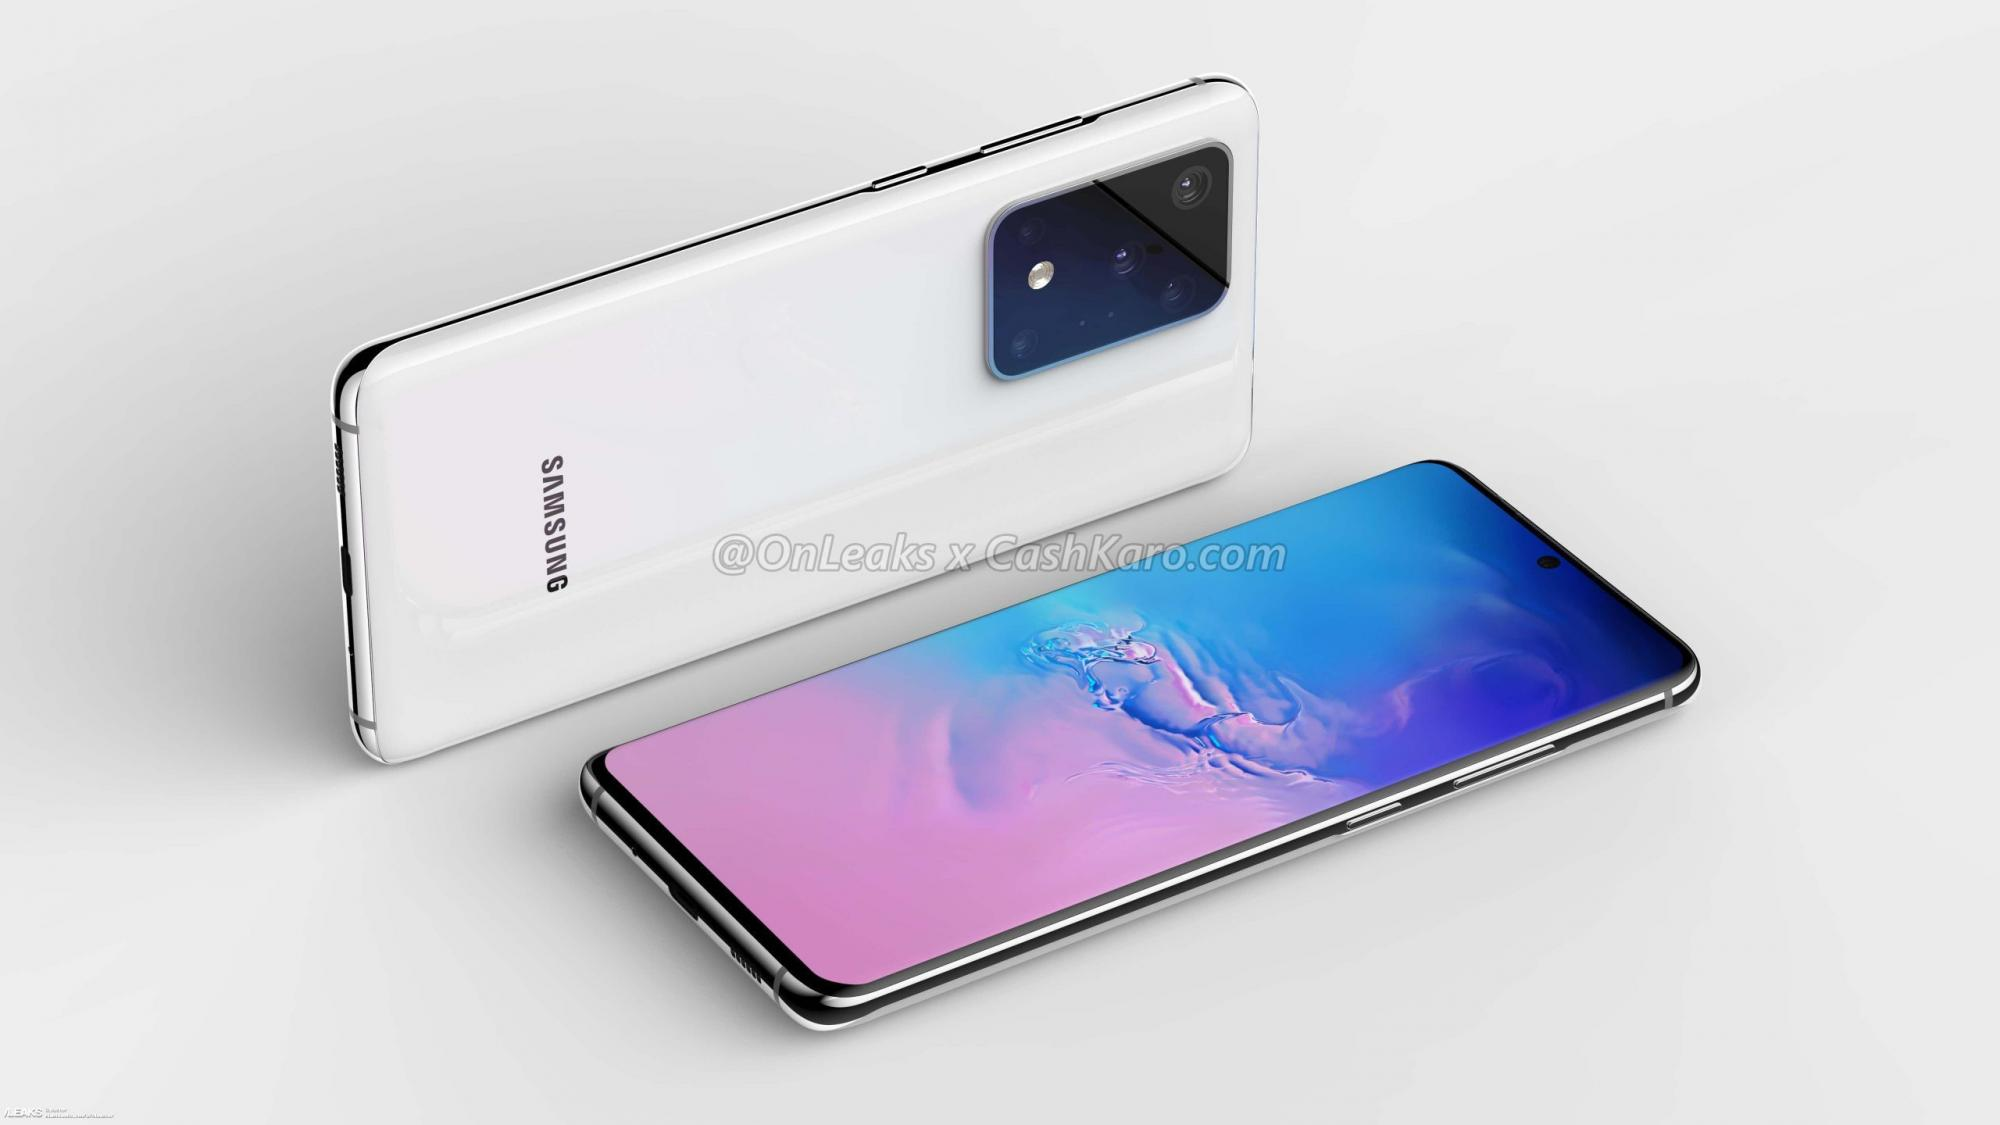 samsung-galaxy-s11-plus-by-onleaks-621.jpg